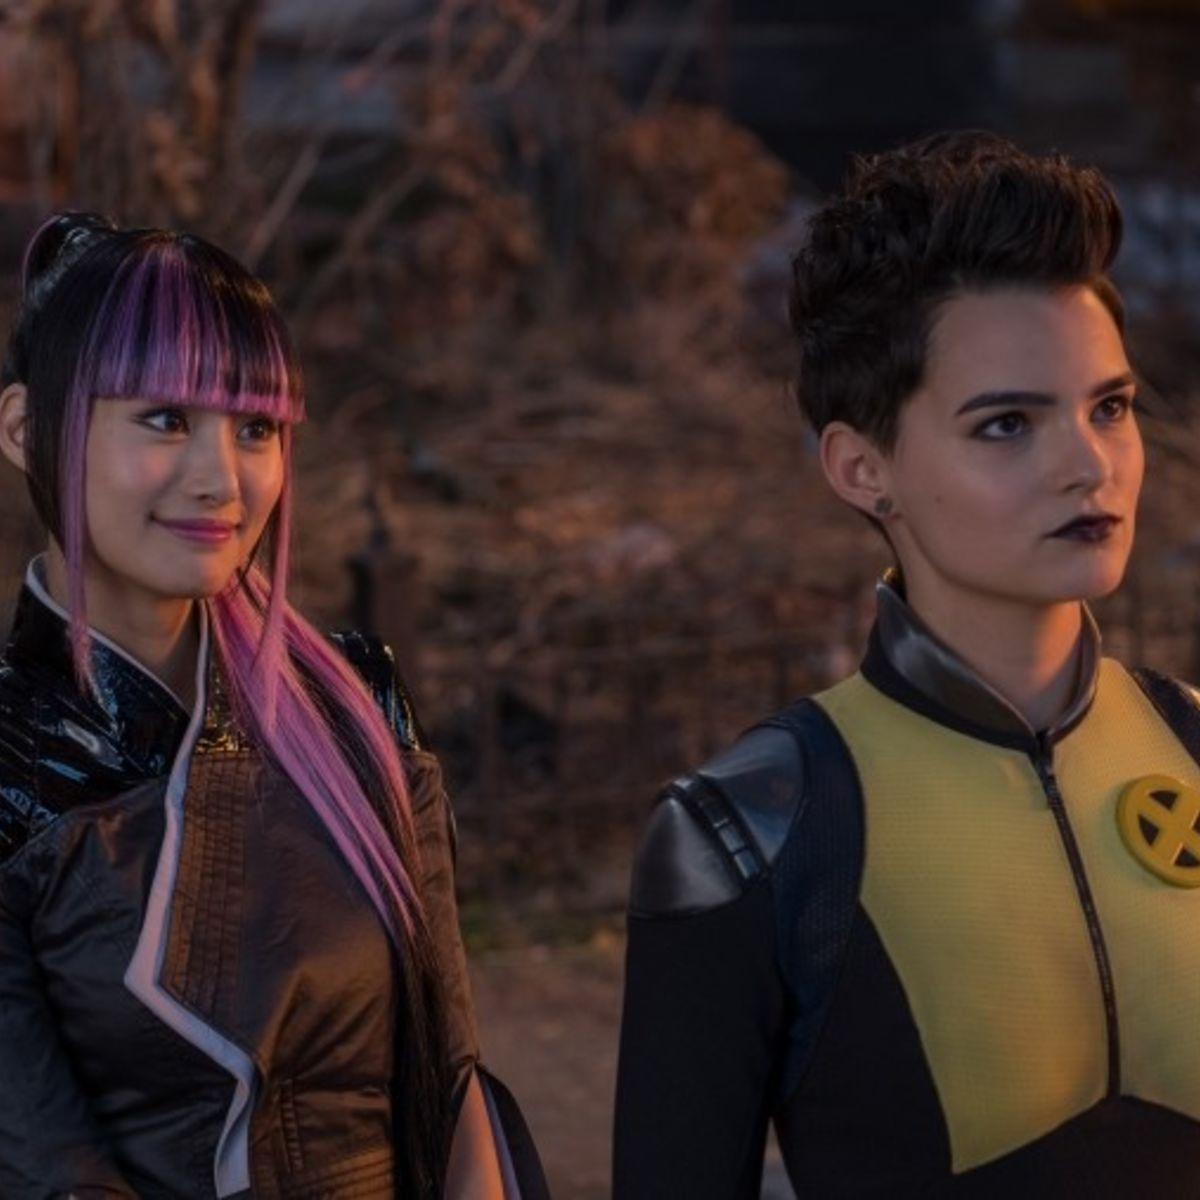 Negasonic Teenage Warhead and Yukio